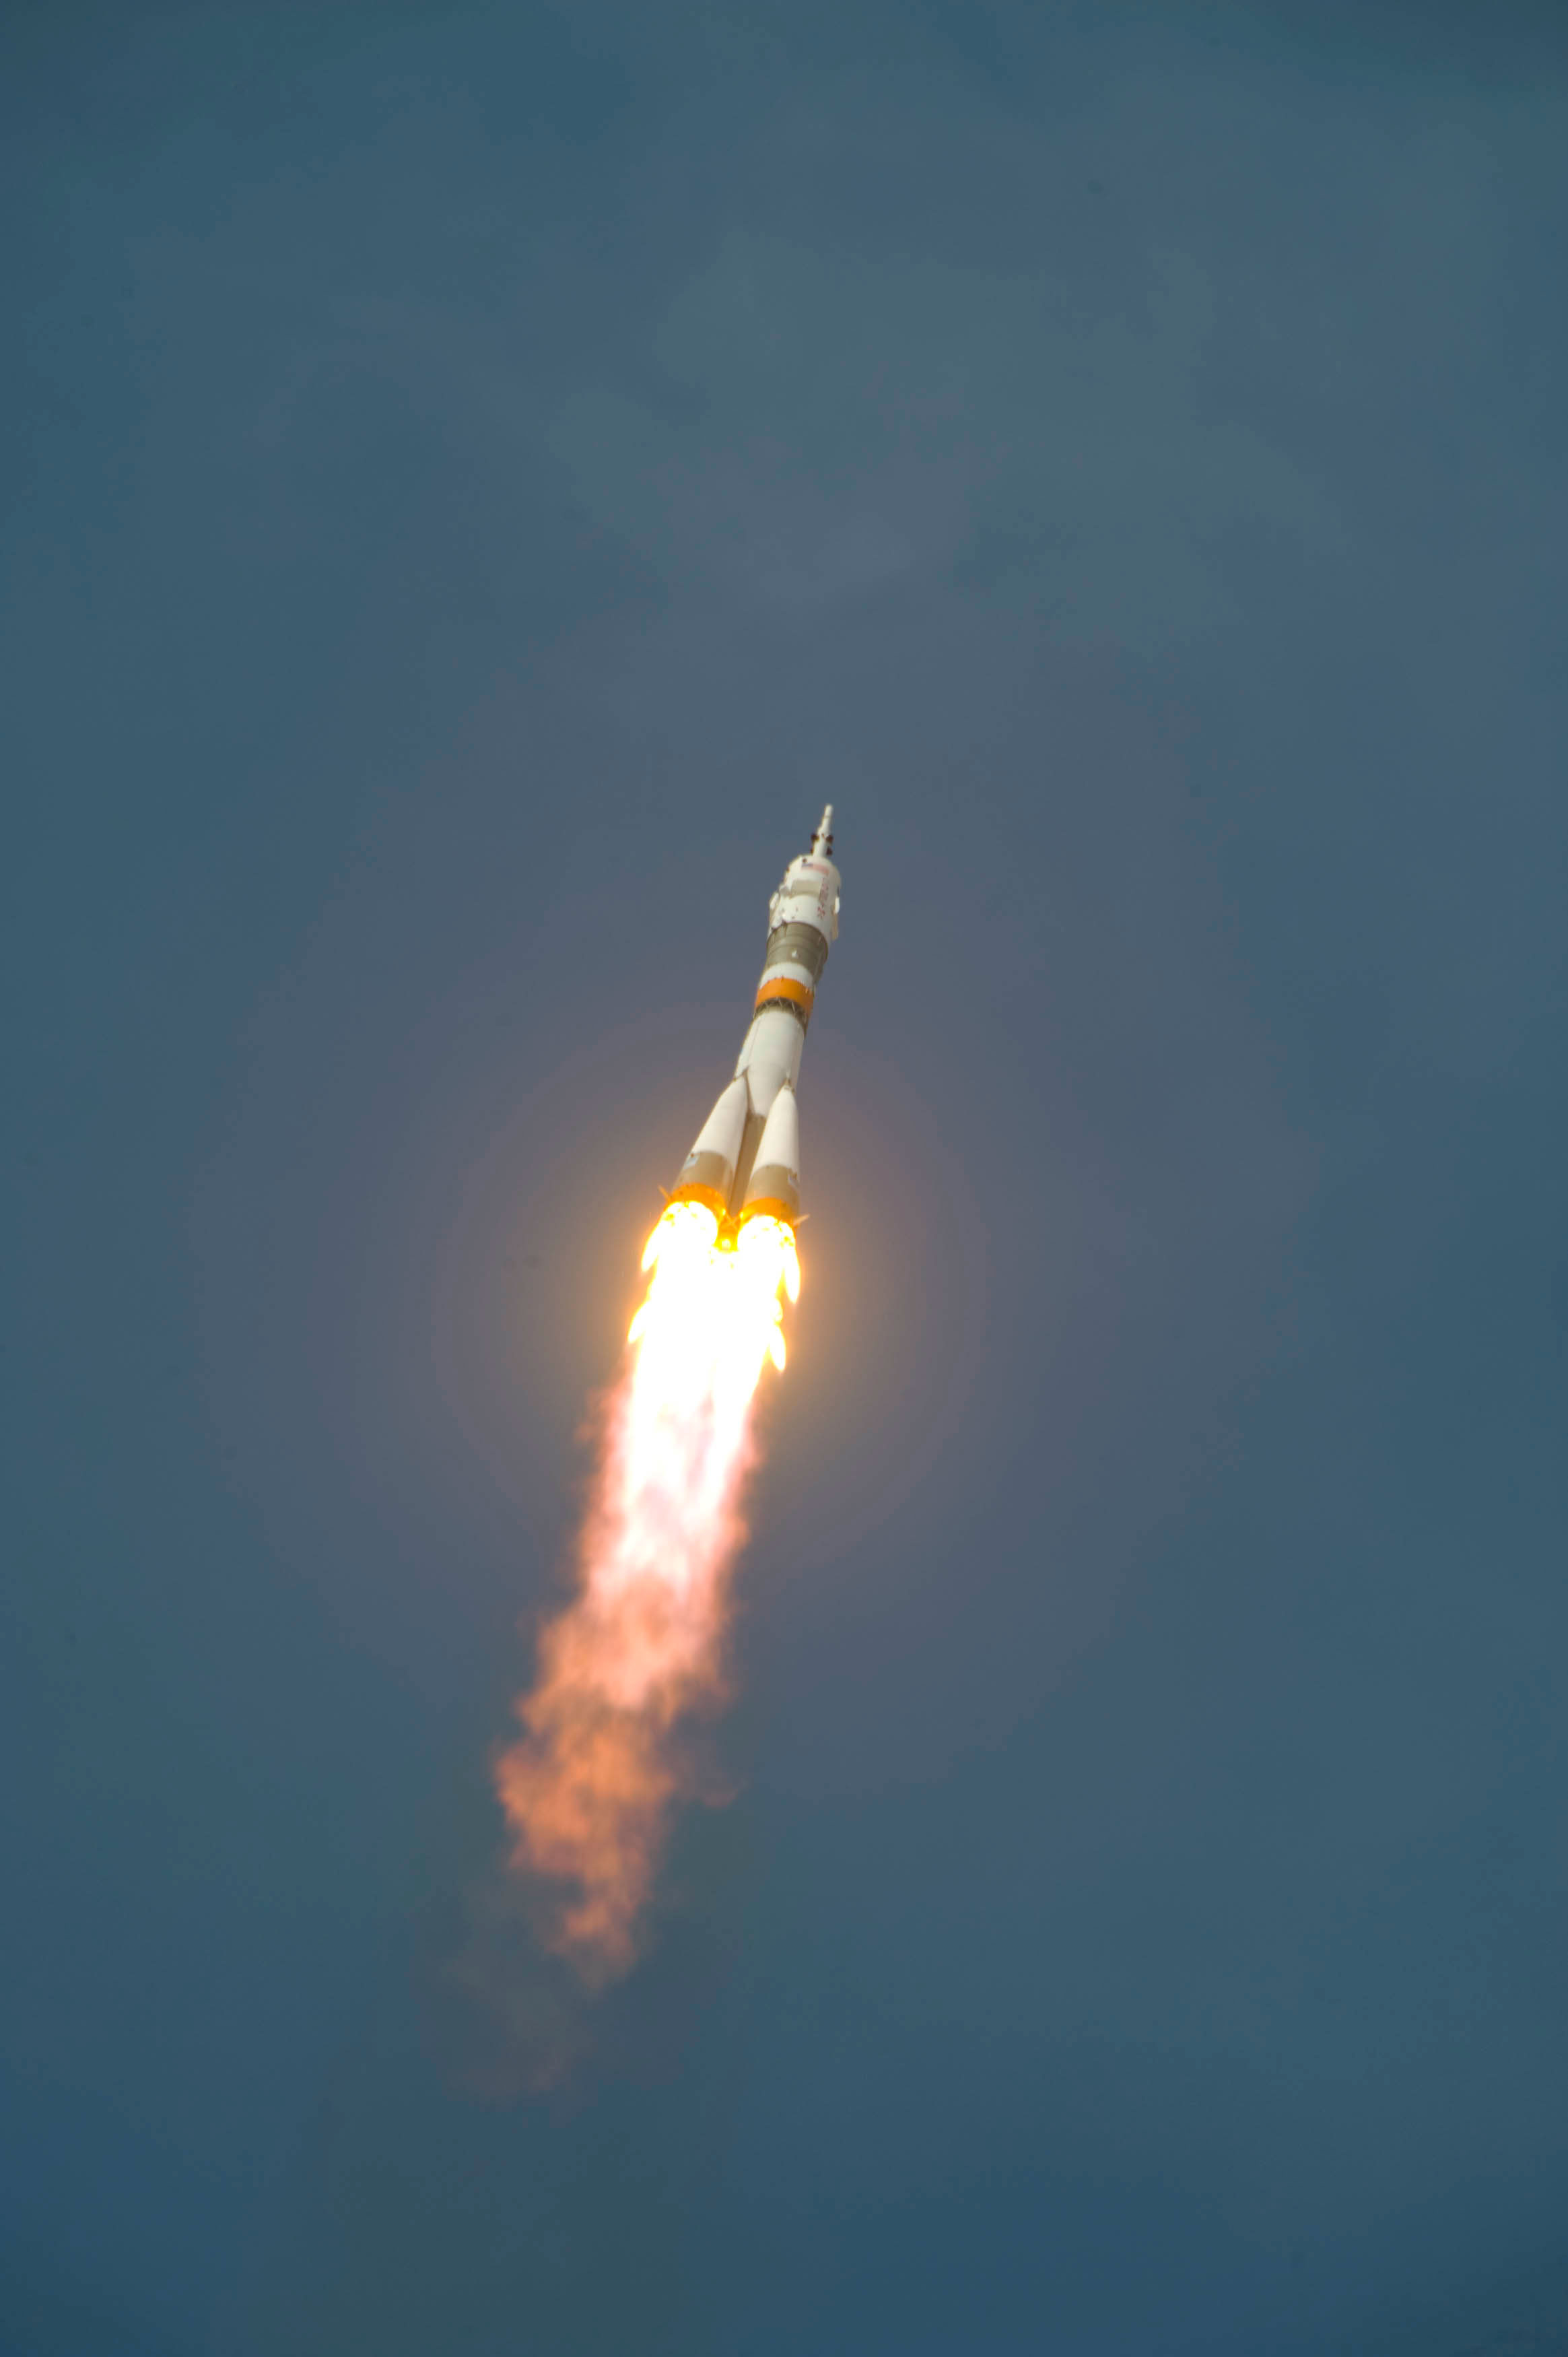 The_Soyuz_TMA-15_launches_from_the_Baikonur_Cosmodrome_in_Kazakhstan_at_12_34_CEST_on_27_May_2009